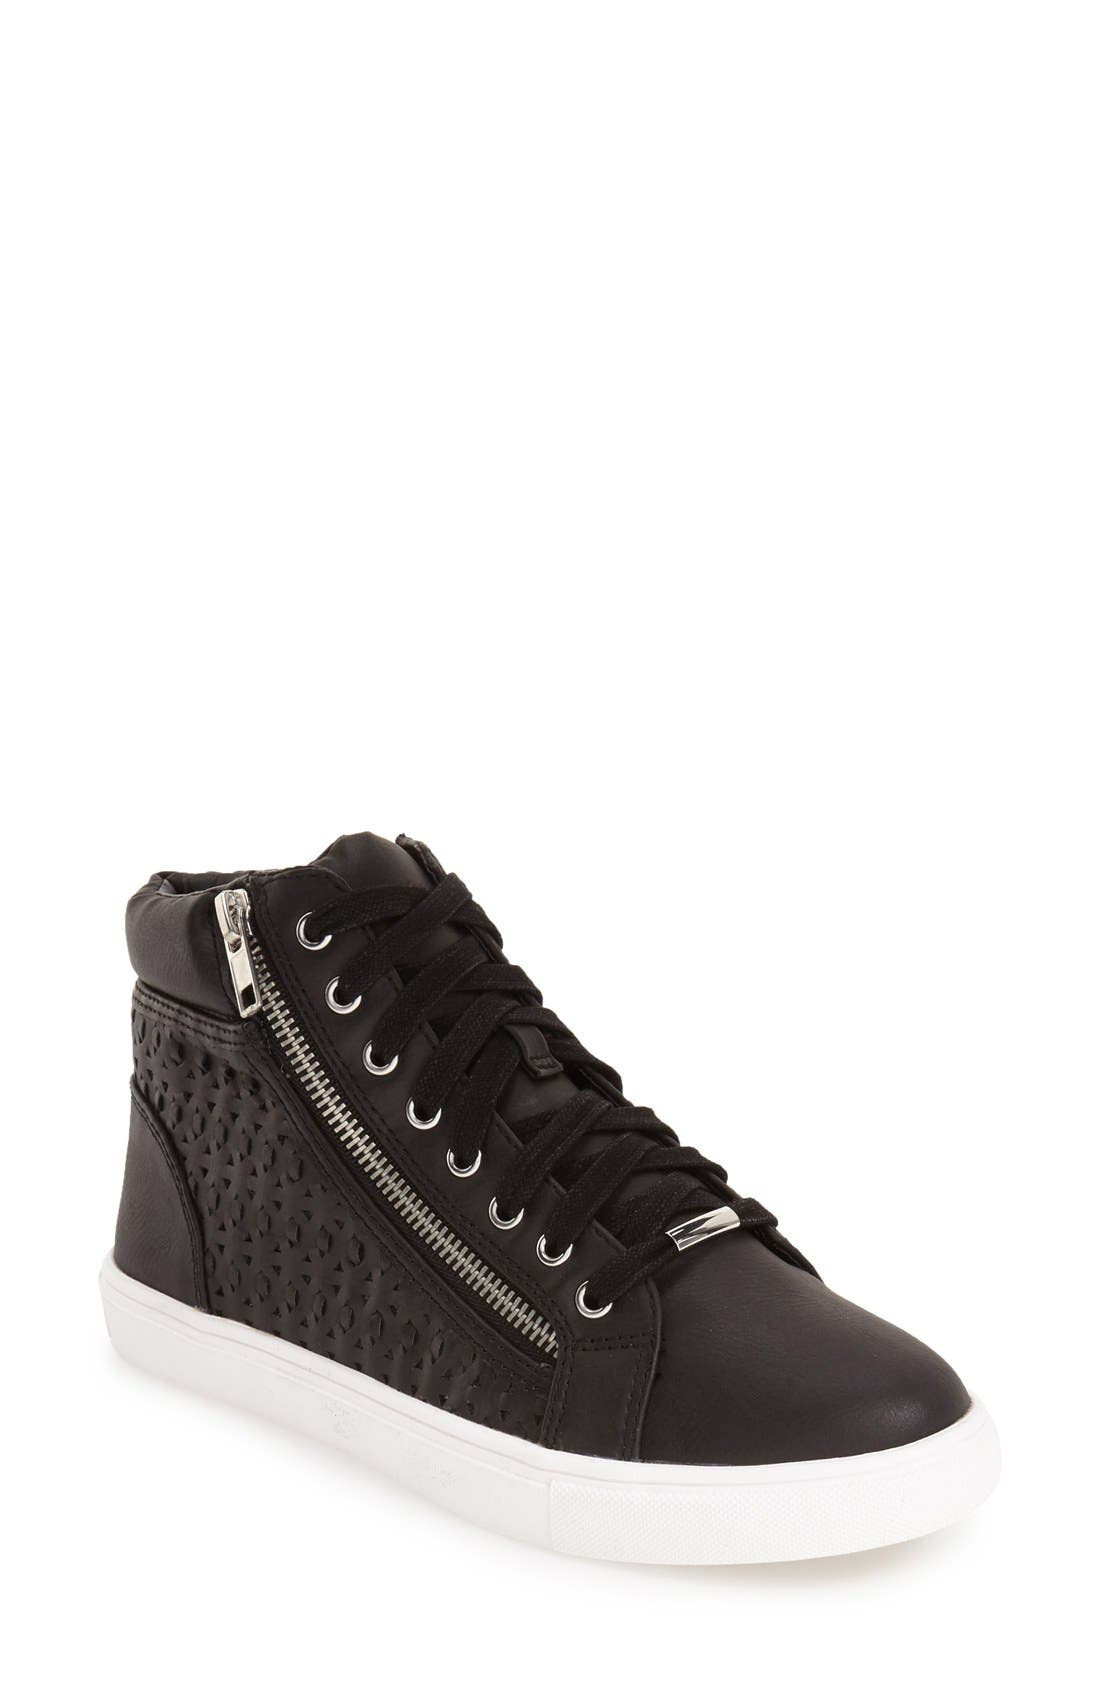 Alternate Image 1 Selected - Steve Madden 'Eiris' Sneaker (Women)